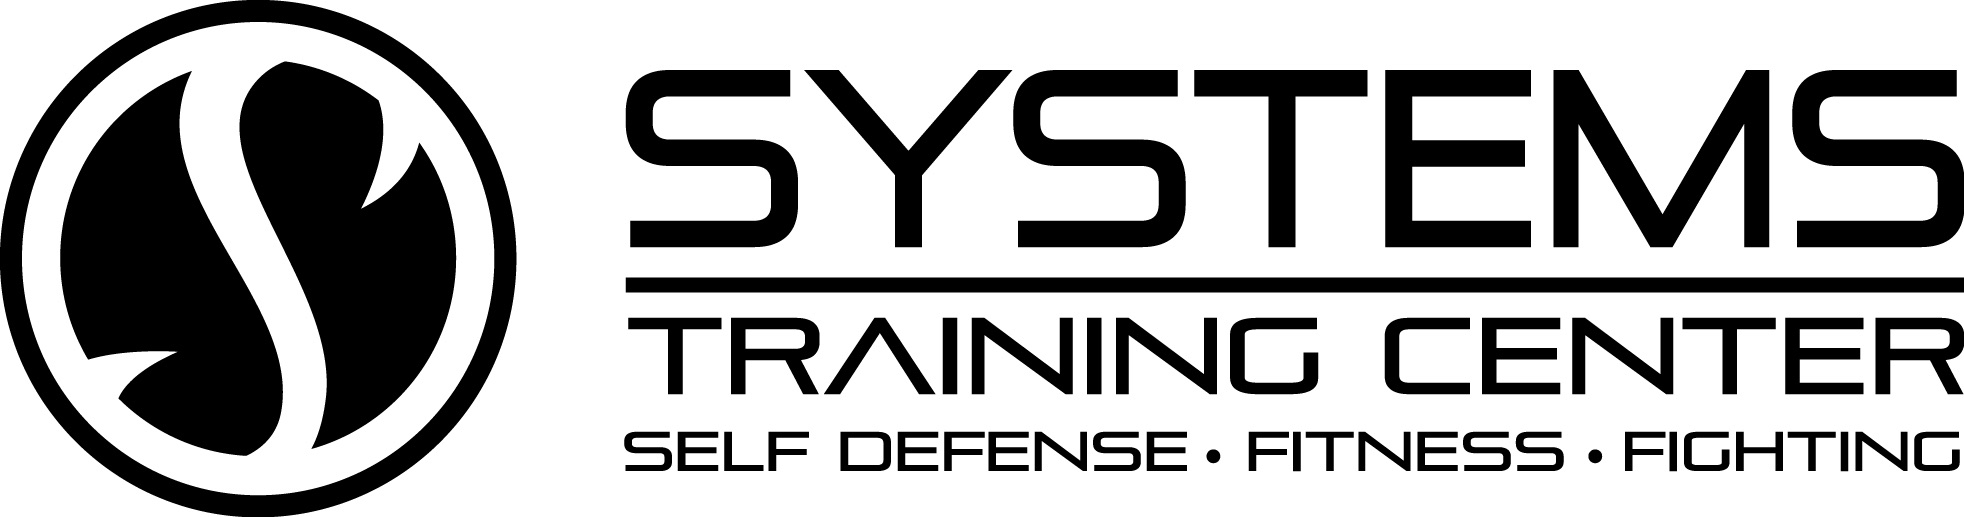 Systems Training Center logo